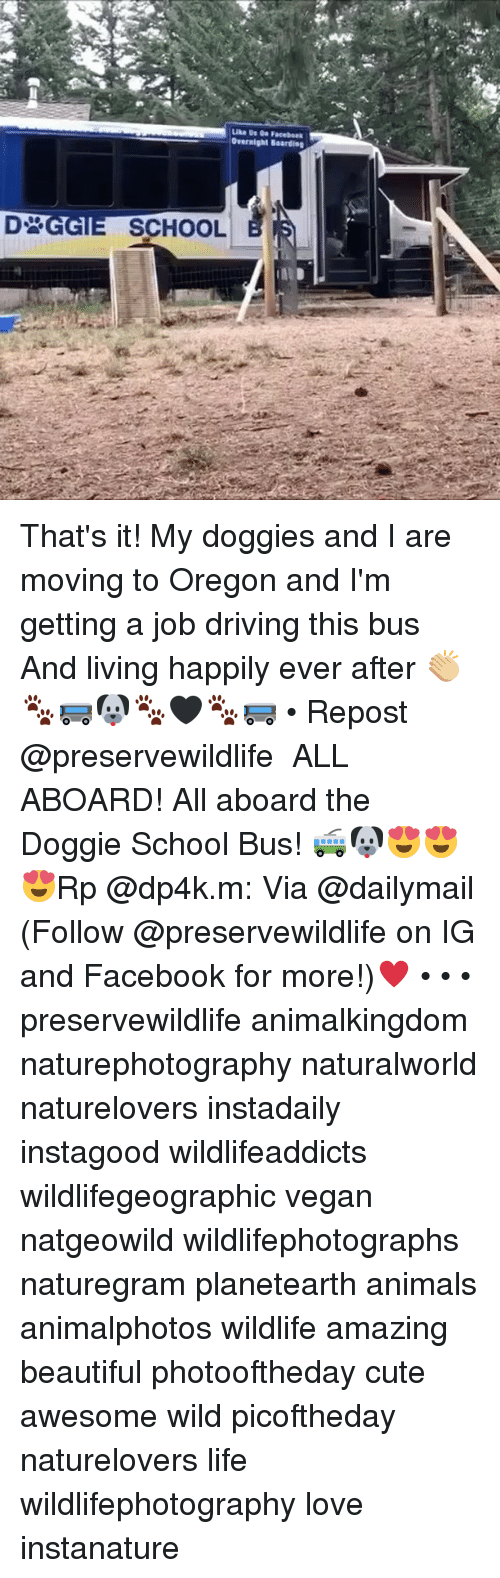 Animals, Beautiful, and Cute: Overnight Boardieg  SCHOOL That's it! My doggies and I are moving to Oregon and I'm getting a job driving this bus And living happily ever after 👏🏼🐾🚌🐶🐾🖤🐾🚌 • Repost @preservewildlife ・・・ ALL ABOARD! All aboard the Doggie School Bus! 🚎🐶😍😍😍Rp @dp4k.m: Via @dailymail (Follow @preservewildlife on IG and Facebook for more!)♥️ • • • preservewildlife animalkingdom naturephotography naturalworld naturelovers instadaily instagood wildlifeaddicts wildlifegeographic vegan natgeowild wildlifephotographs naturegram planetearth animals animalphotos wildlife amazing beautiful photooftheday cute awesome wild picoftheday naturelovers life wildlifephotography love instanature